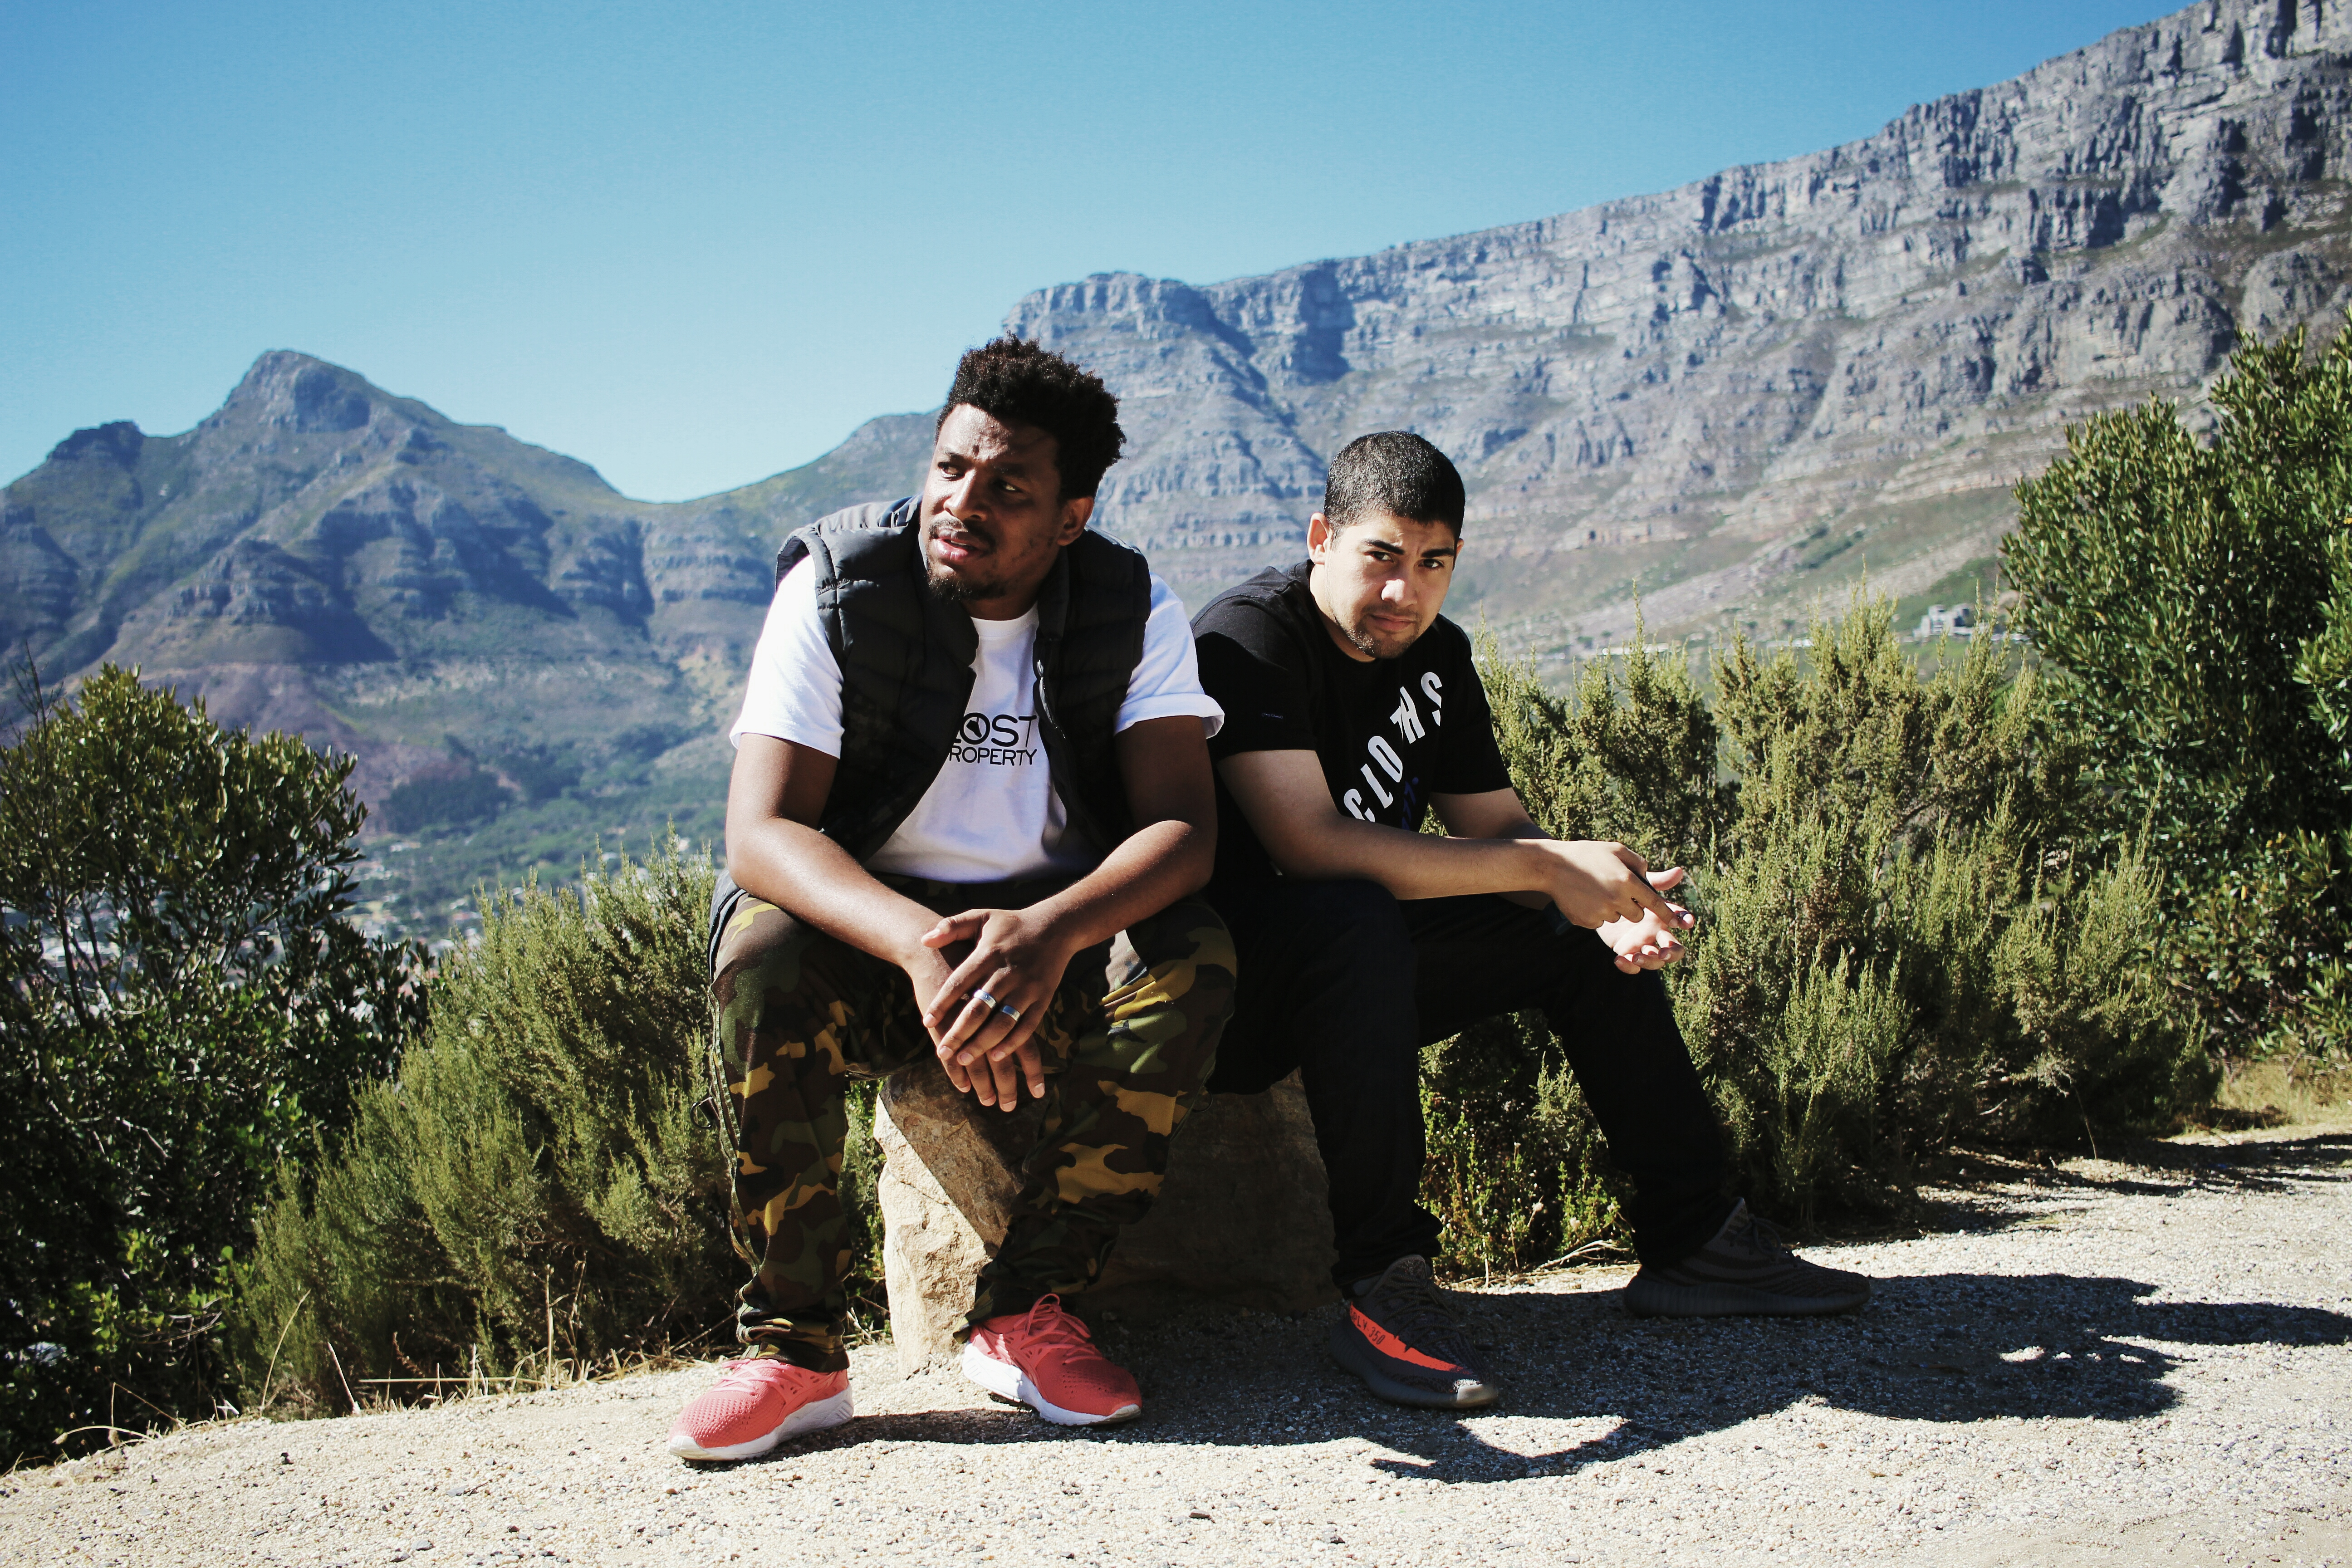 HYPE Magazine Interviews Zaid Osman For #SXCJHB Sneaker Exchange Directors Tebogo Mogola and Zaid Osman Photographed by Warren Papier of THEY KNOW 76